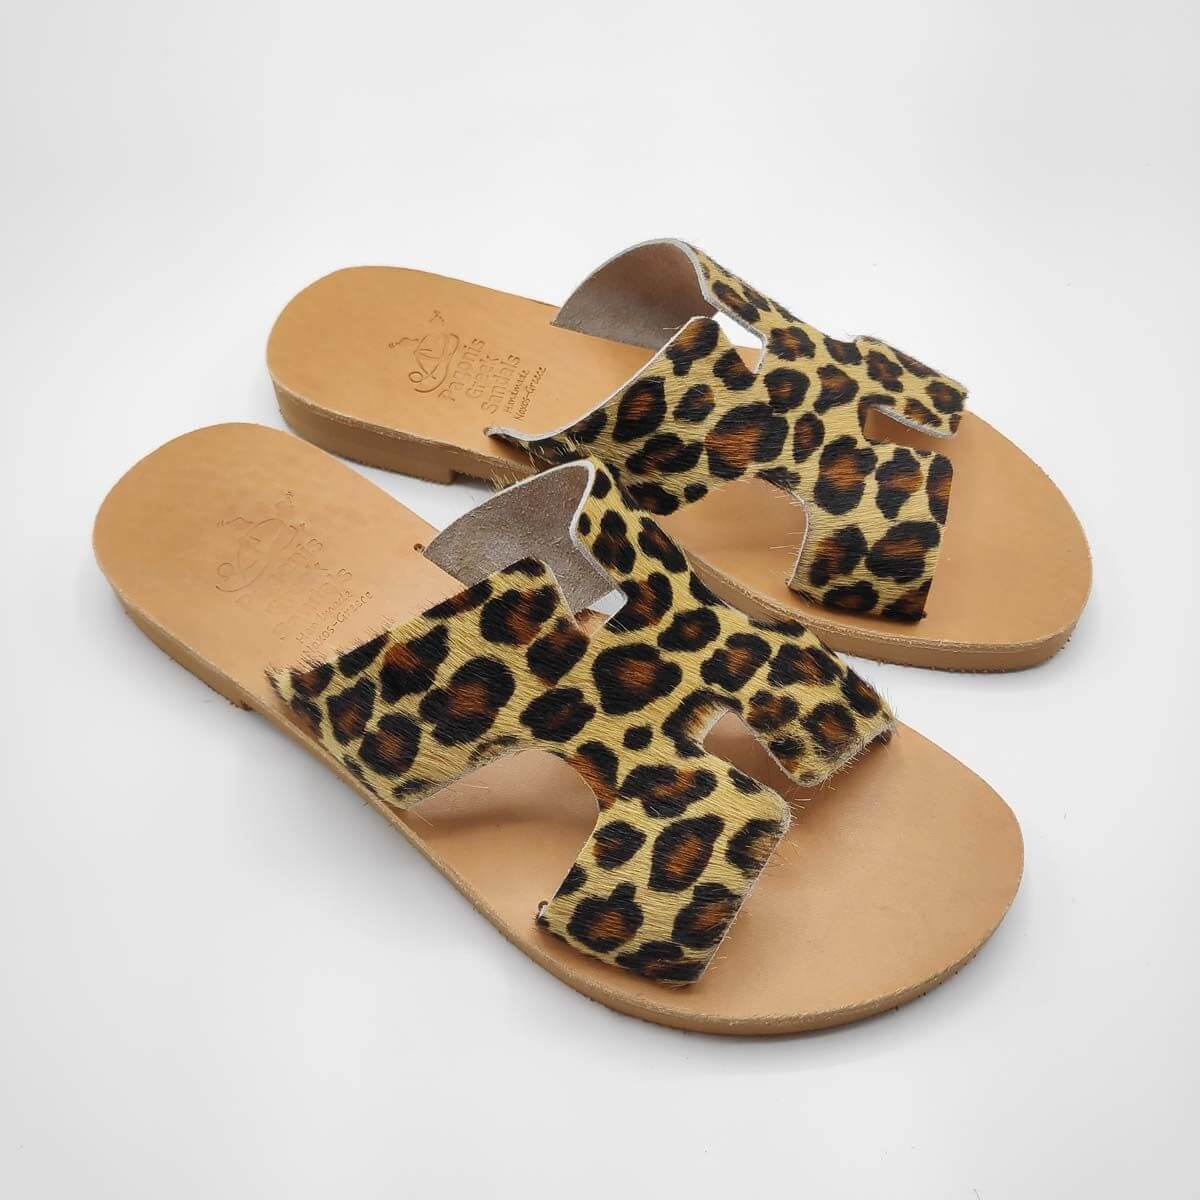 Leopard Print Fur Sandals Greek Hermes | Pagonis Greek Sandals